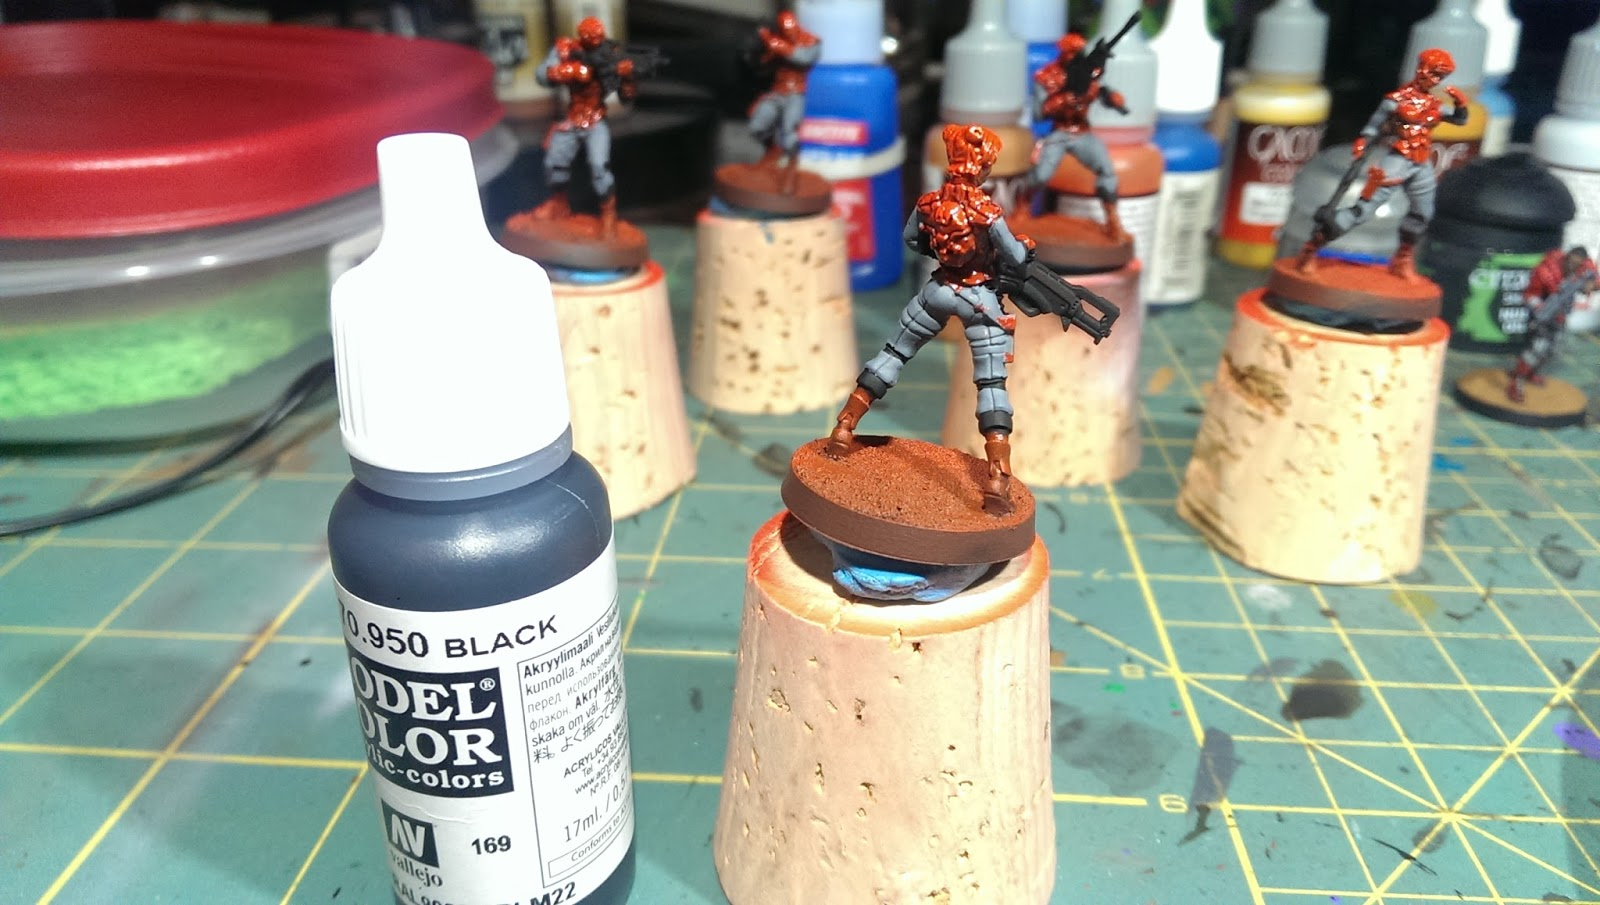 Game color vallejo - Using Vallejo Model Color 70 941 Burnt Umber To Paint The Holsters Straps And Boots On The Model Followed By A Line Highlight Of Vallejo Game Color